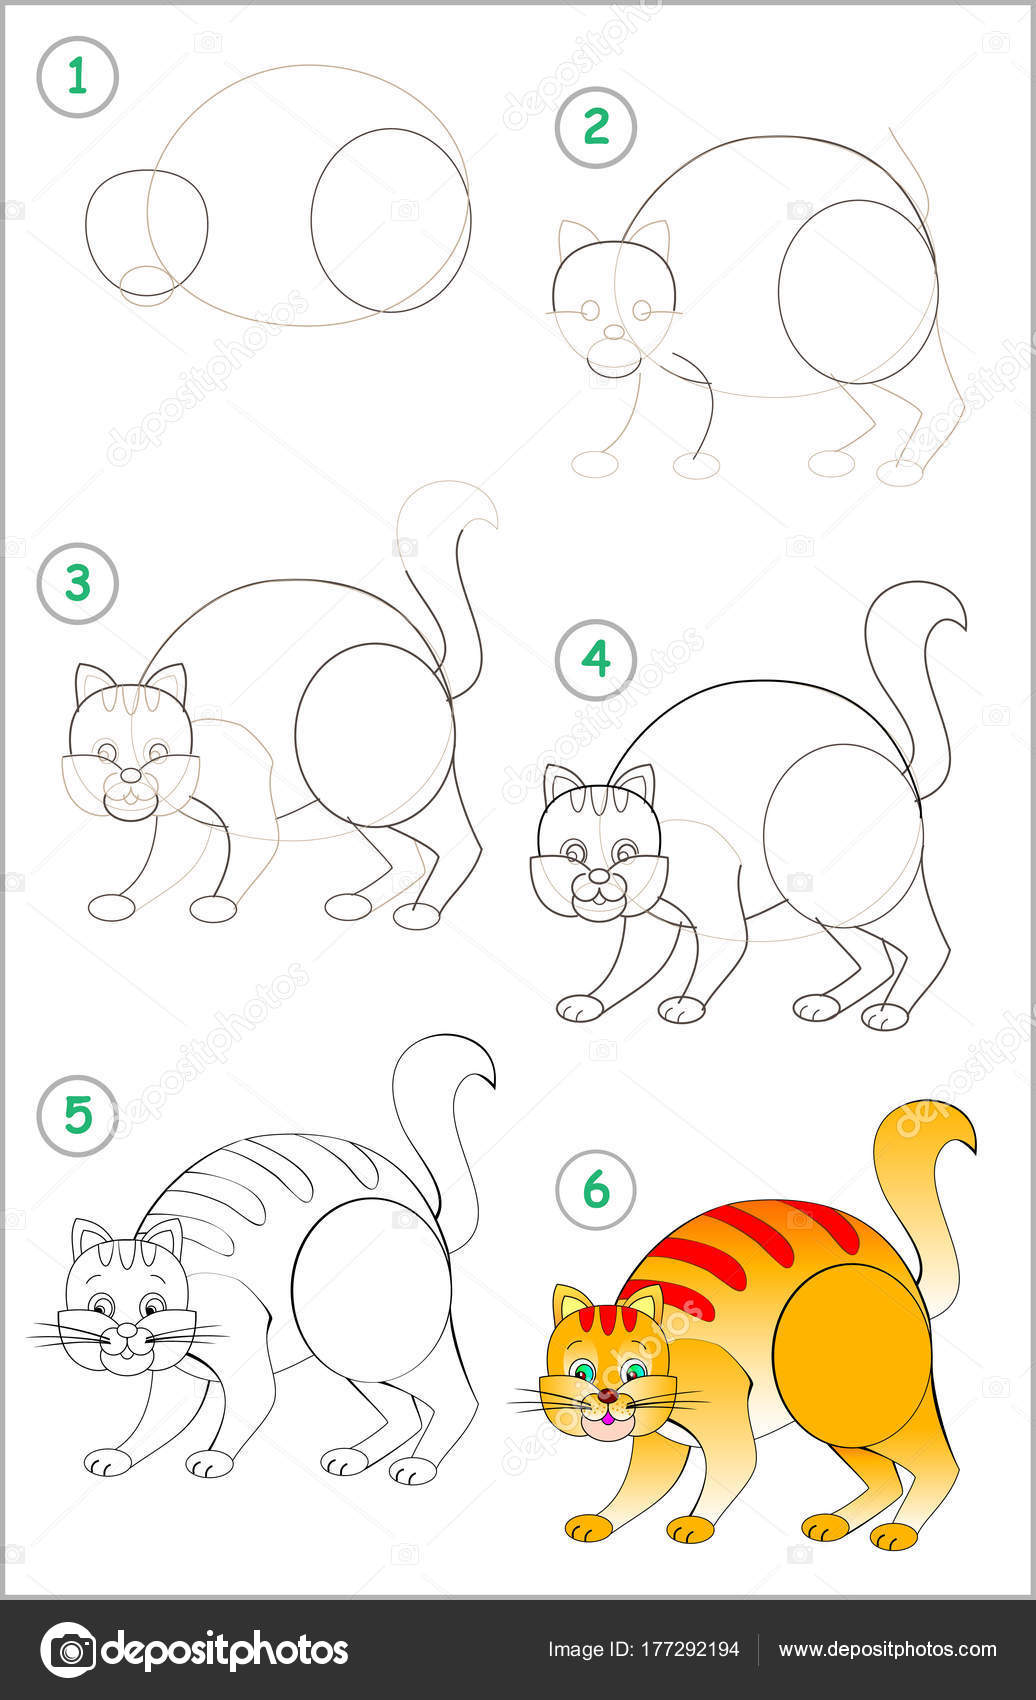 Dessins etapes coloriage chat - Comment dessiner un lynx ...